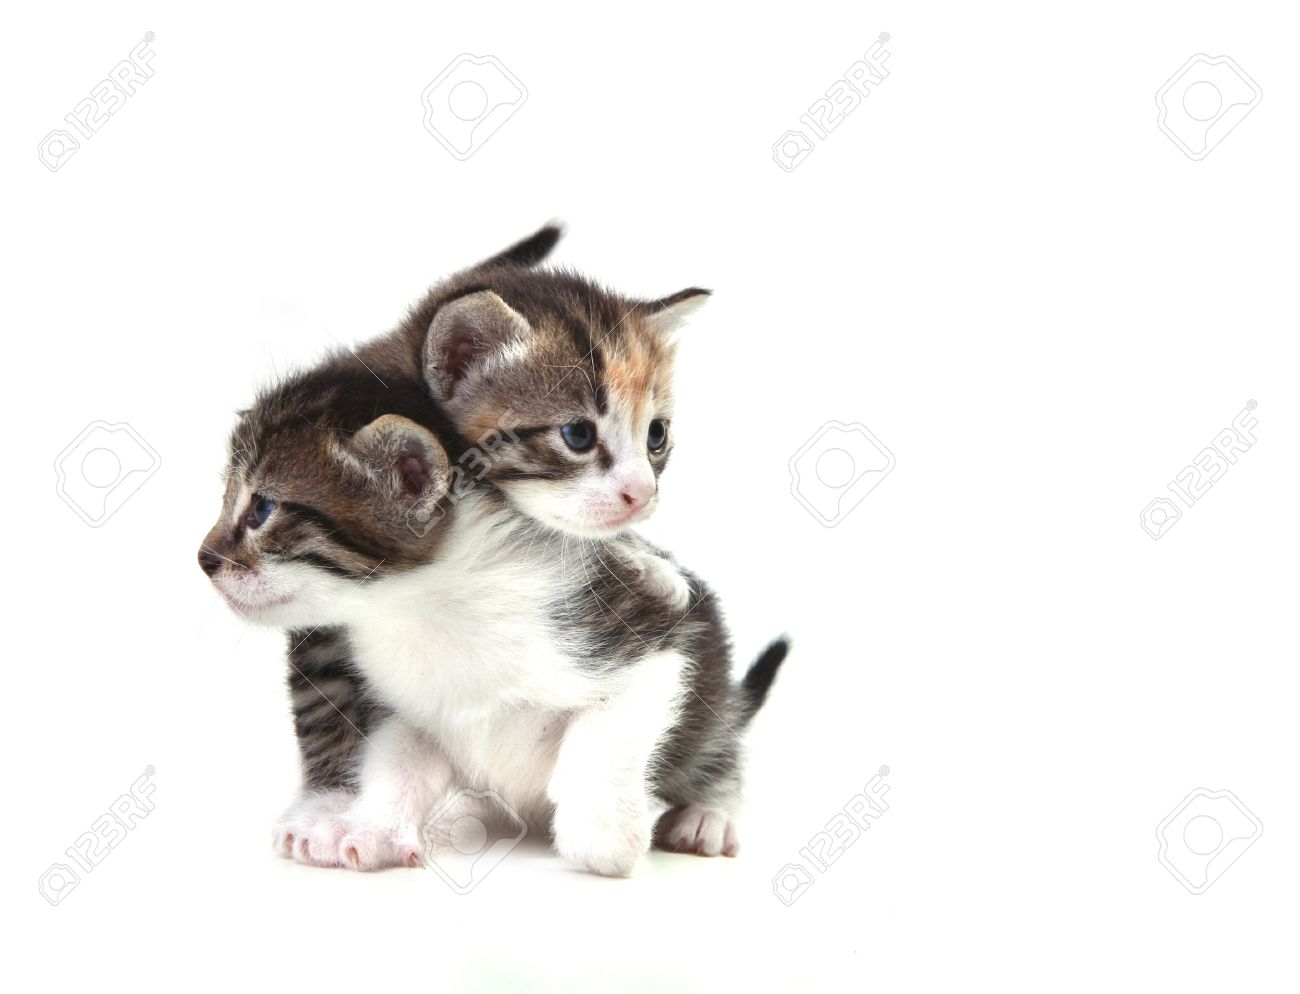 adorable cute kittens on white background stock photo picture and